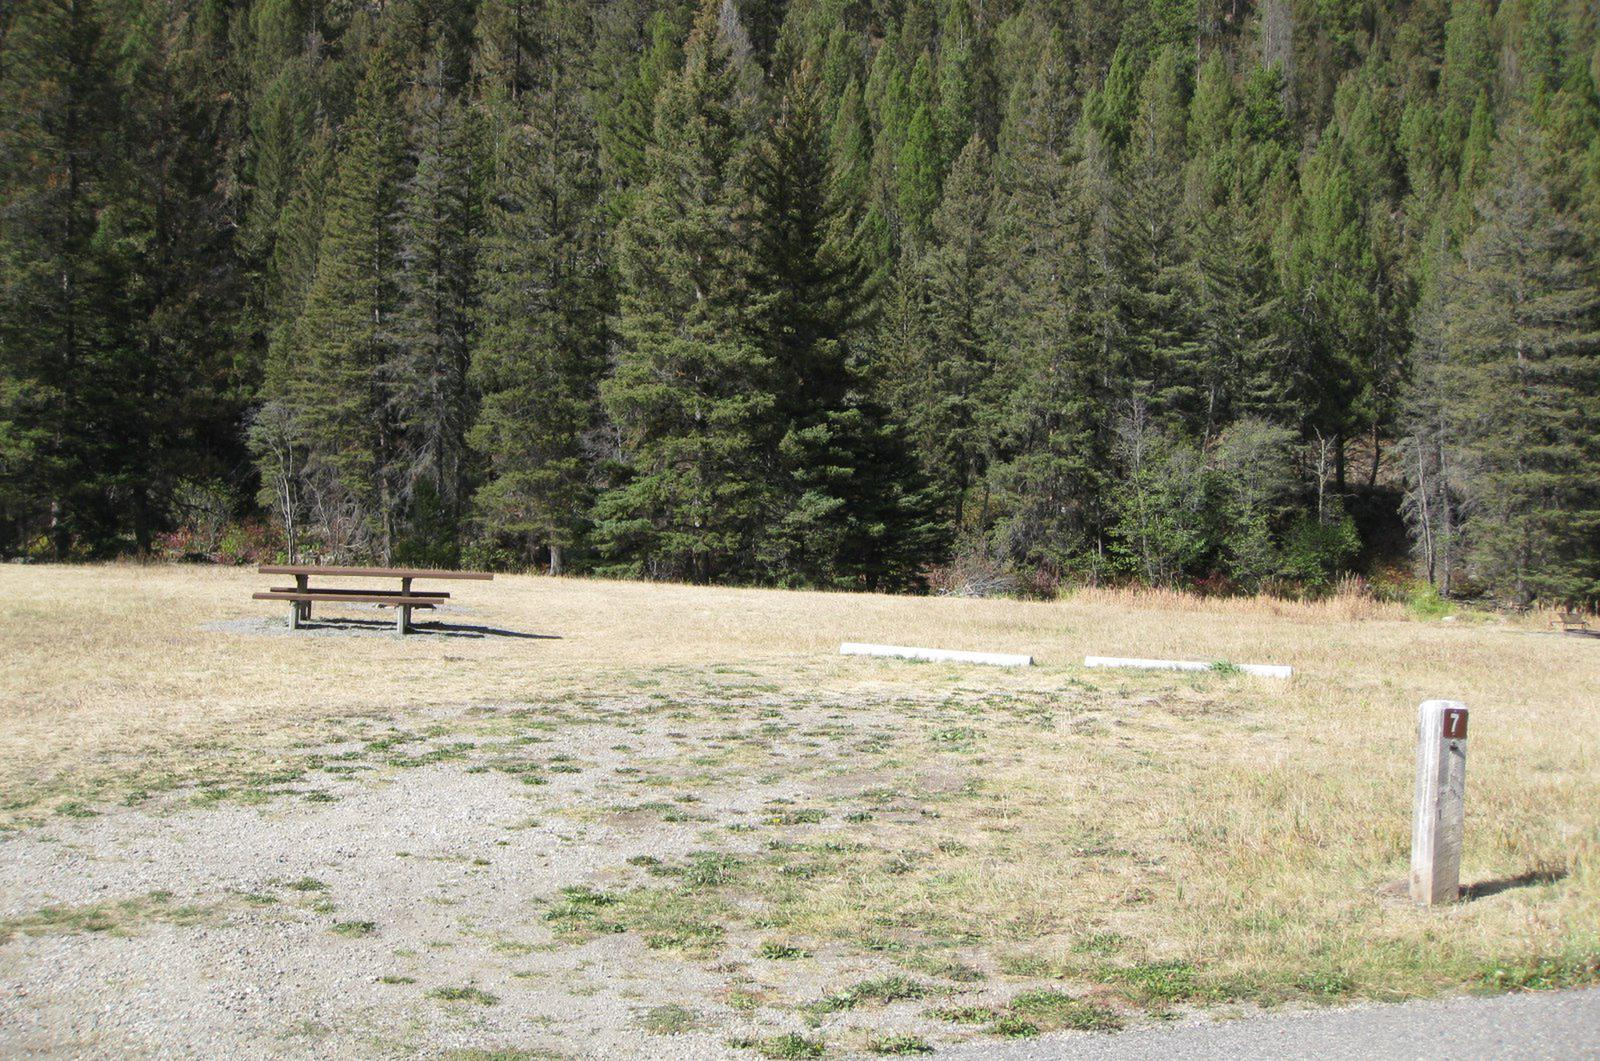 Site 7 campsite - pine trees along river, picnic table & fire ringSite 7